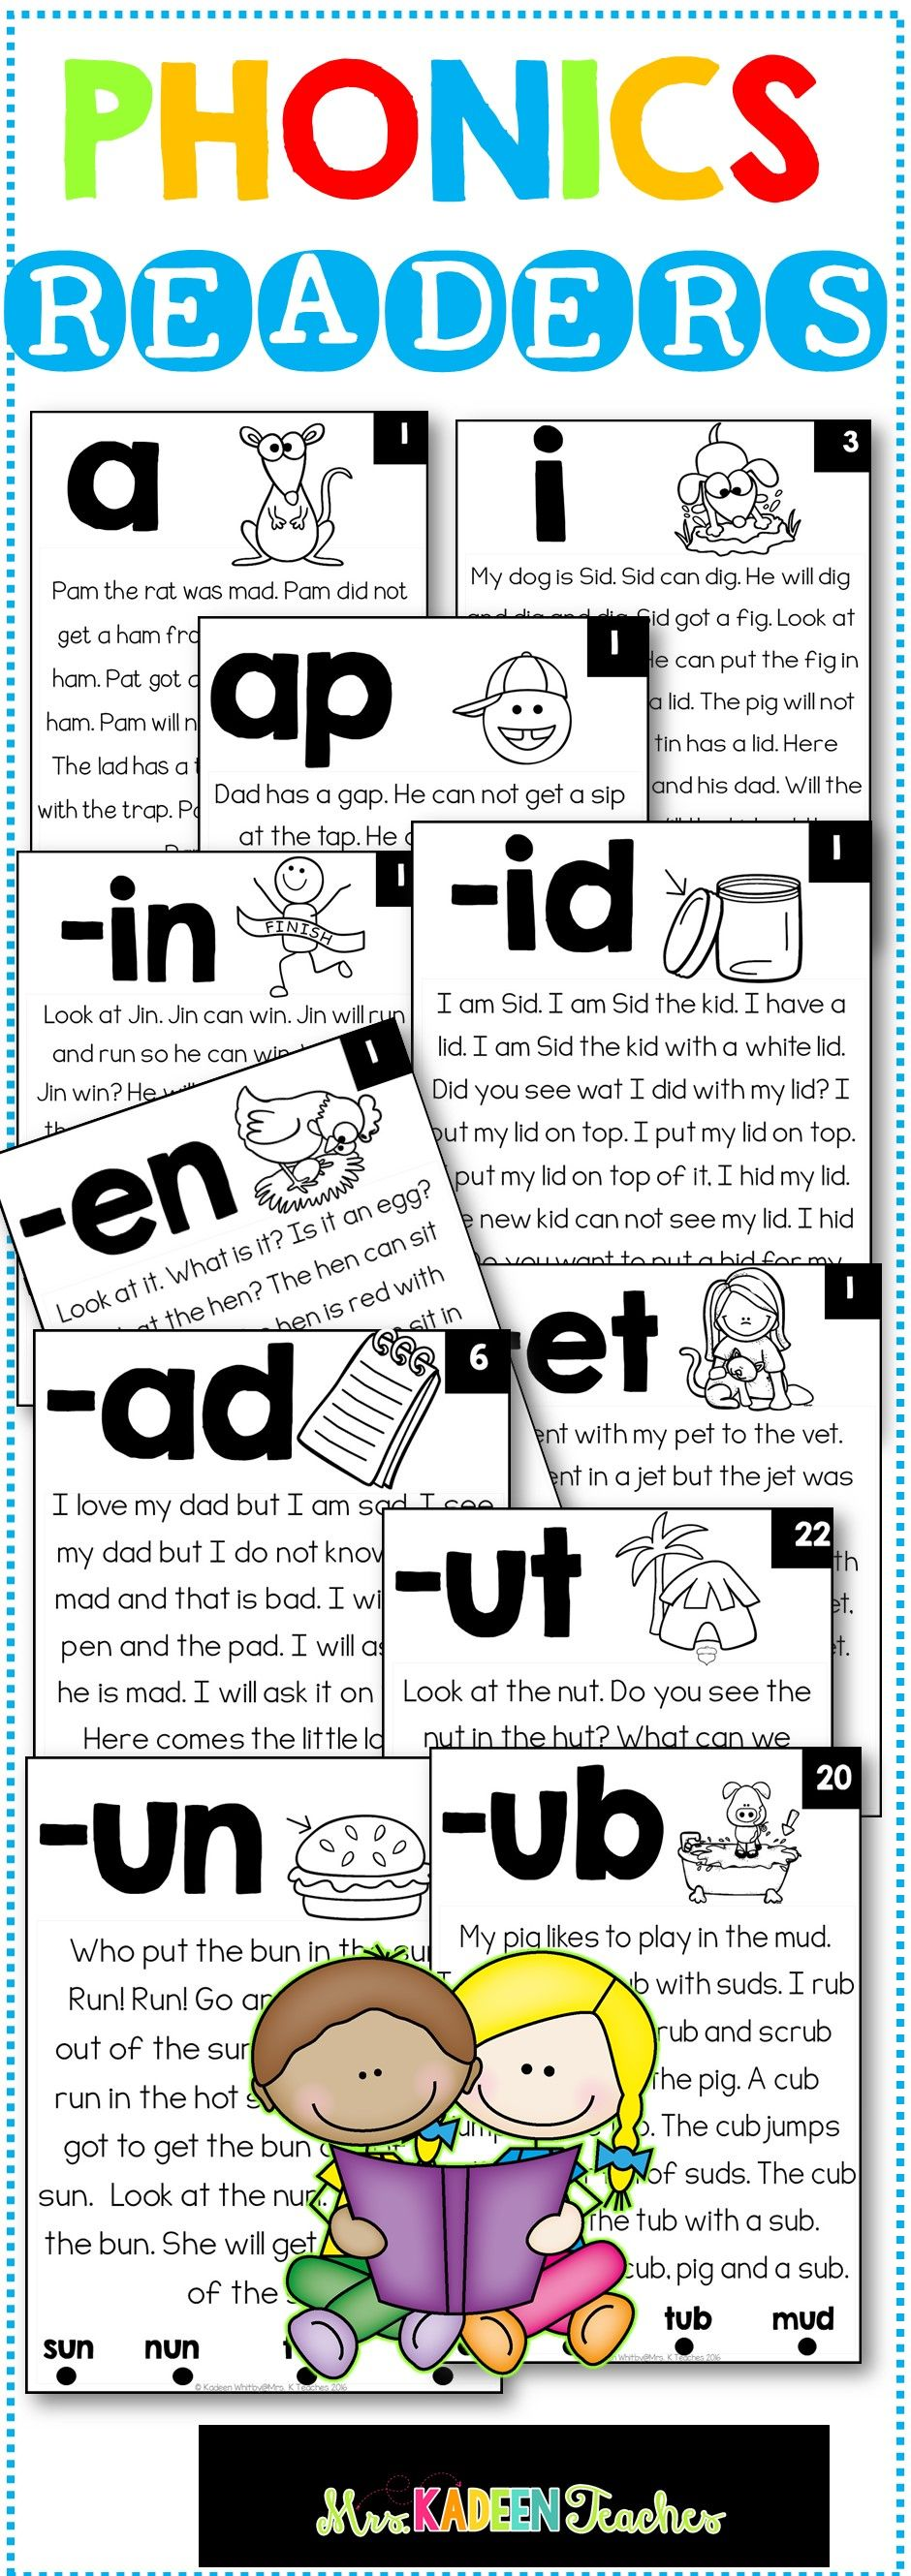 What remedial reading methods work best for students with learning disabilities?